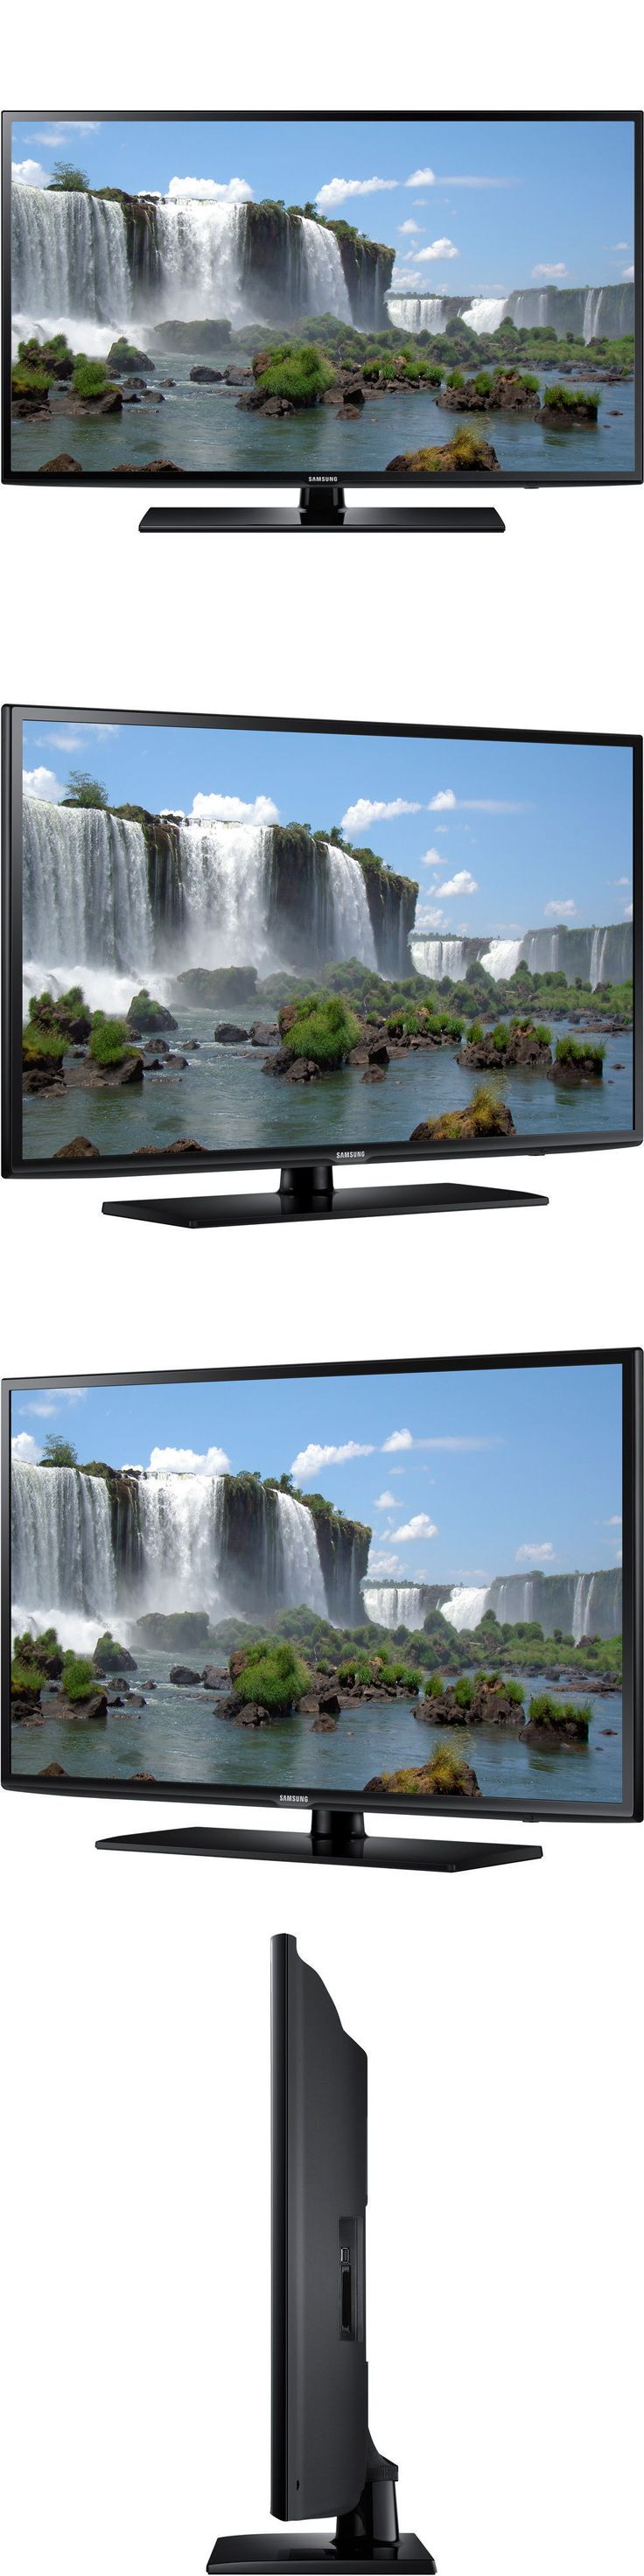 Televisions: Samsung Led Un55j6201 55 Inch Smart Hd Tv 1080P 60Hz Class BUY IT NOW ONLY: $419.0